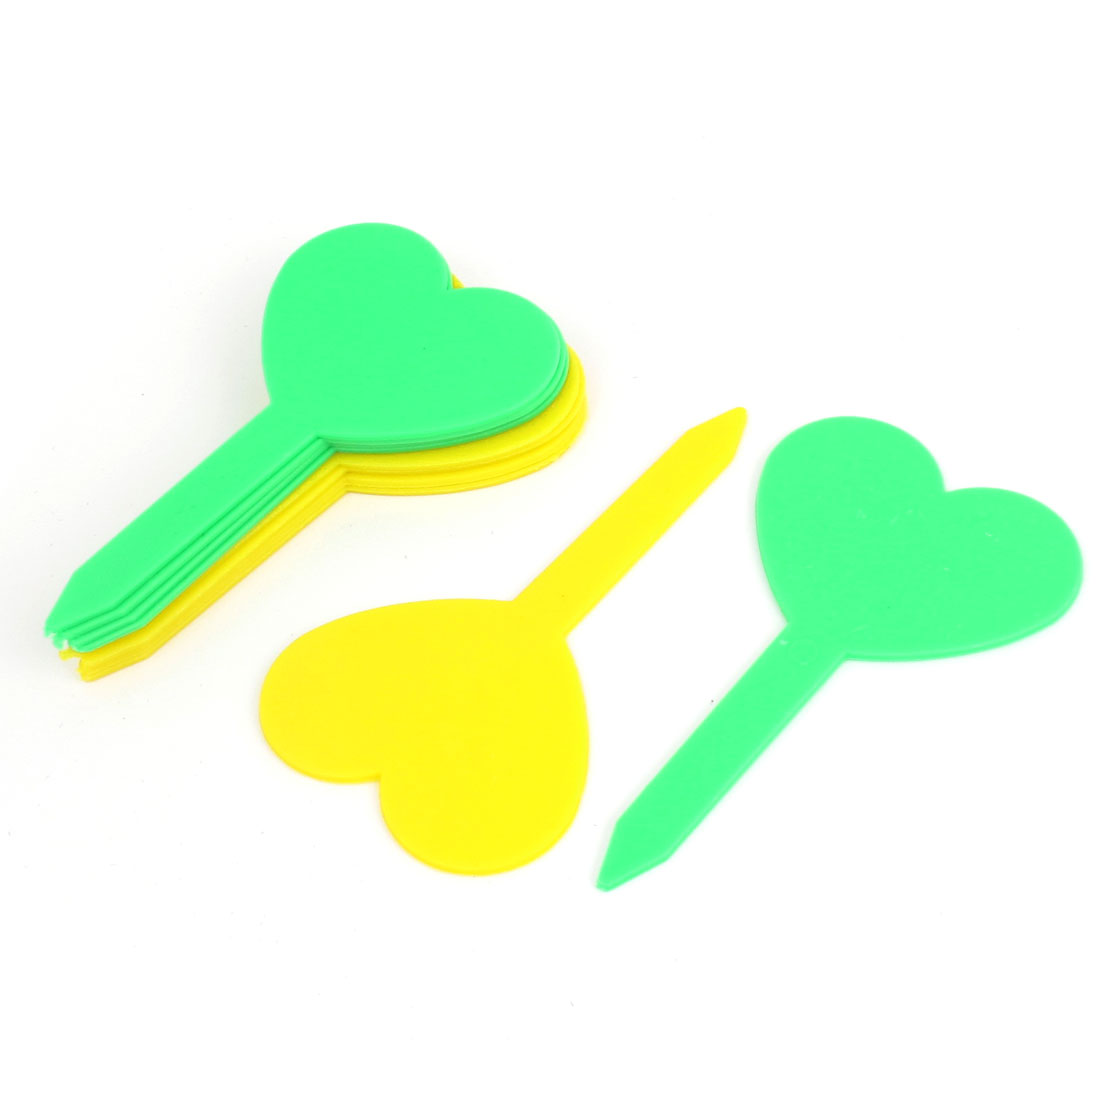 Yellow Green Heart Shaped Garden Yard Potted Plants Tag Stick Label Marker 10pcs